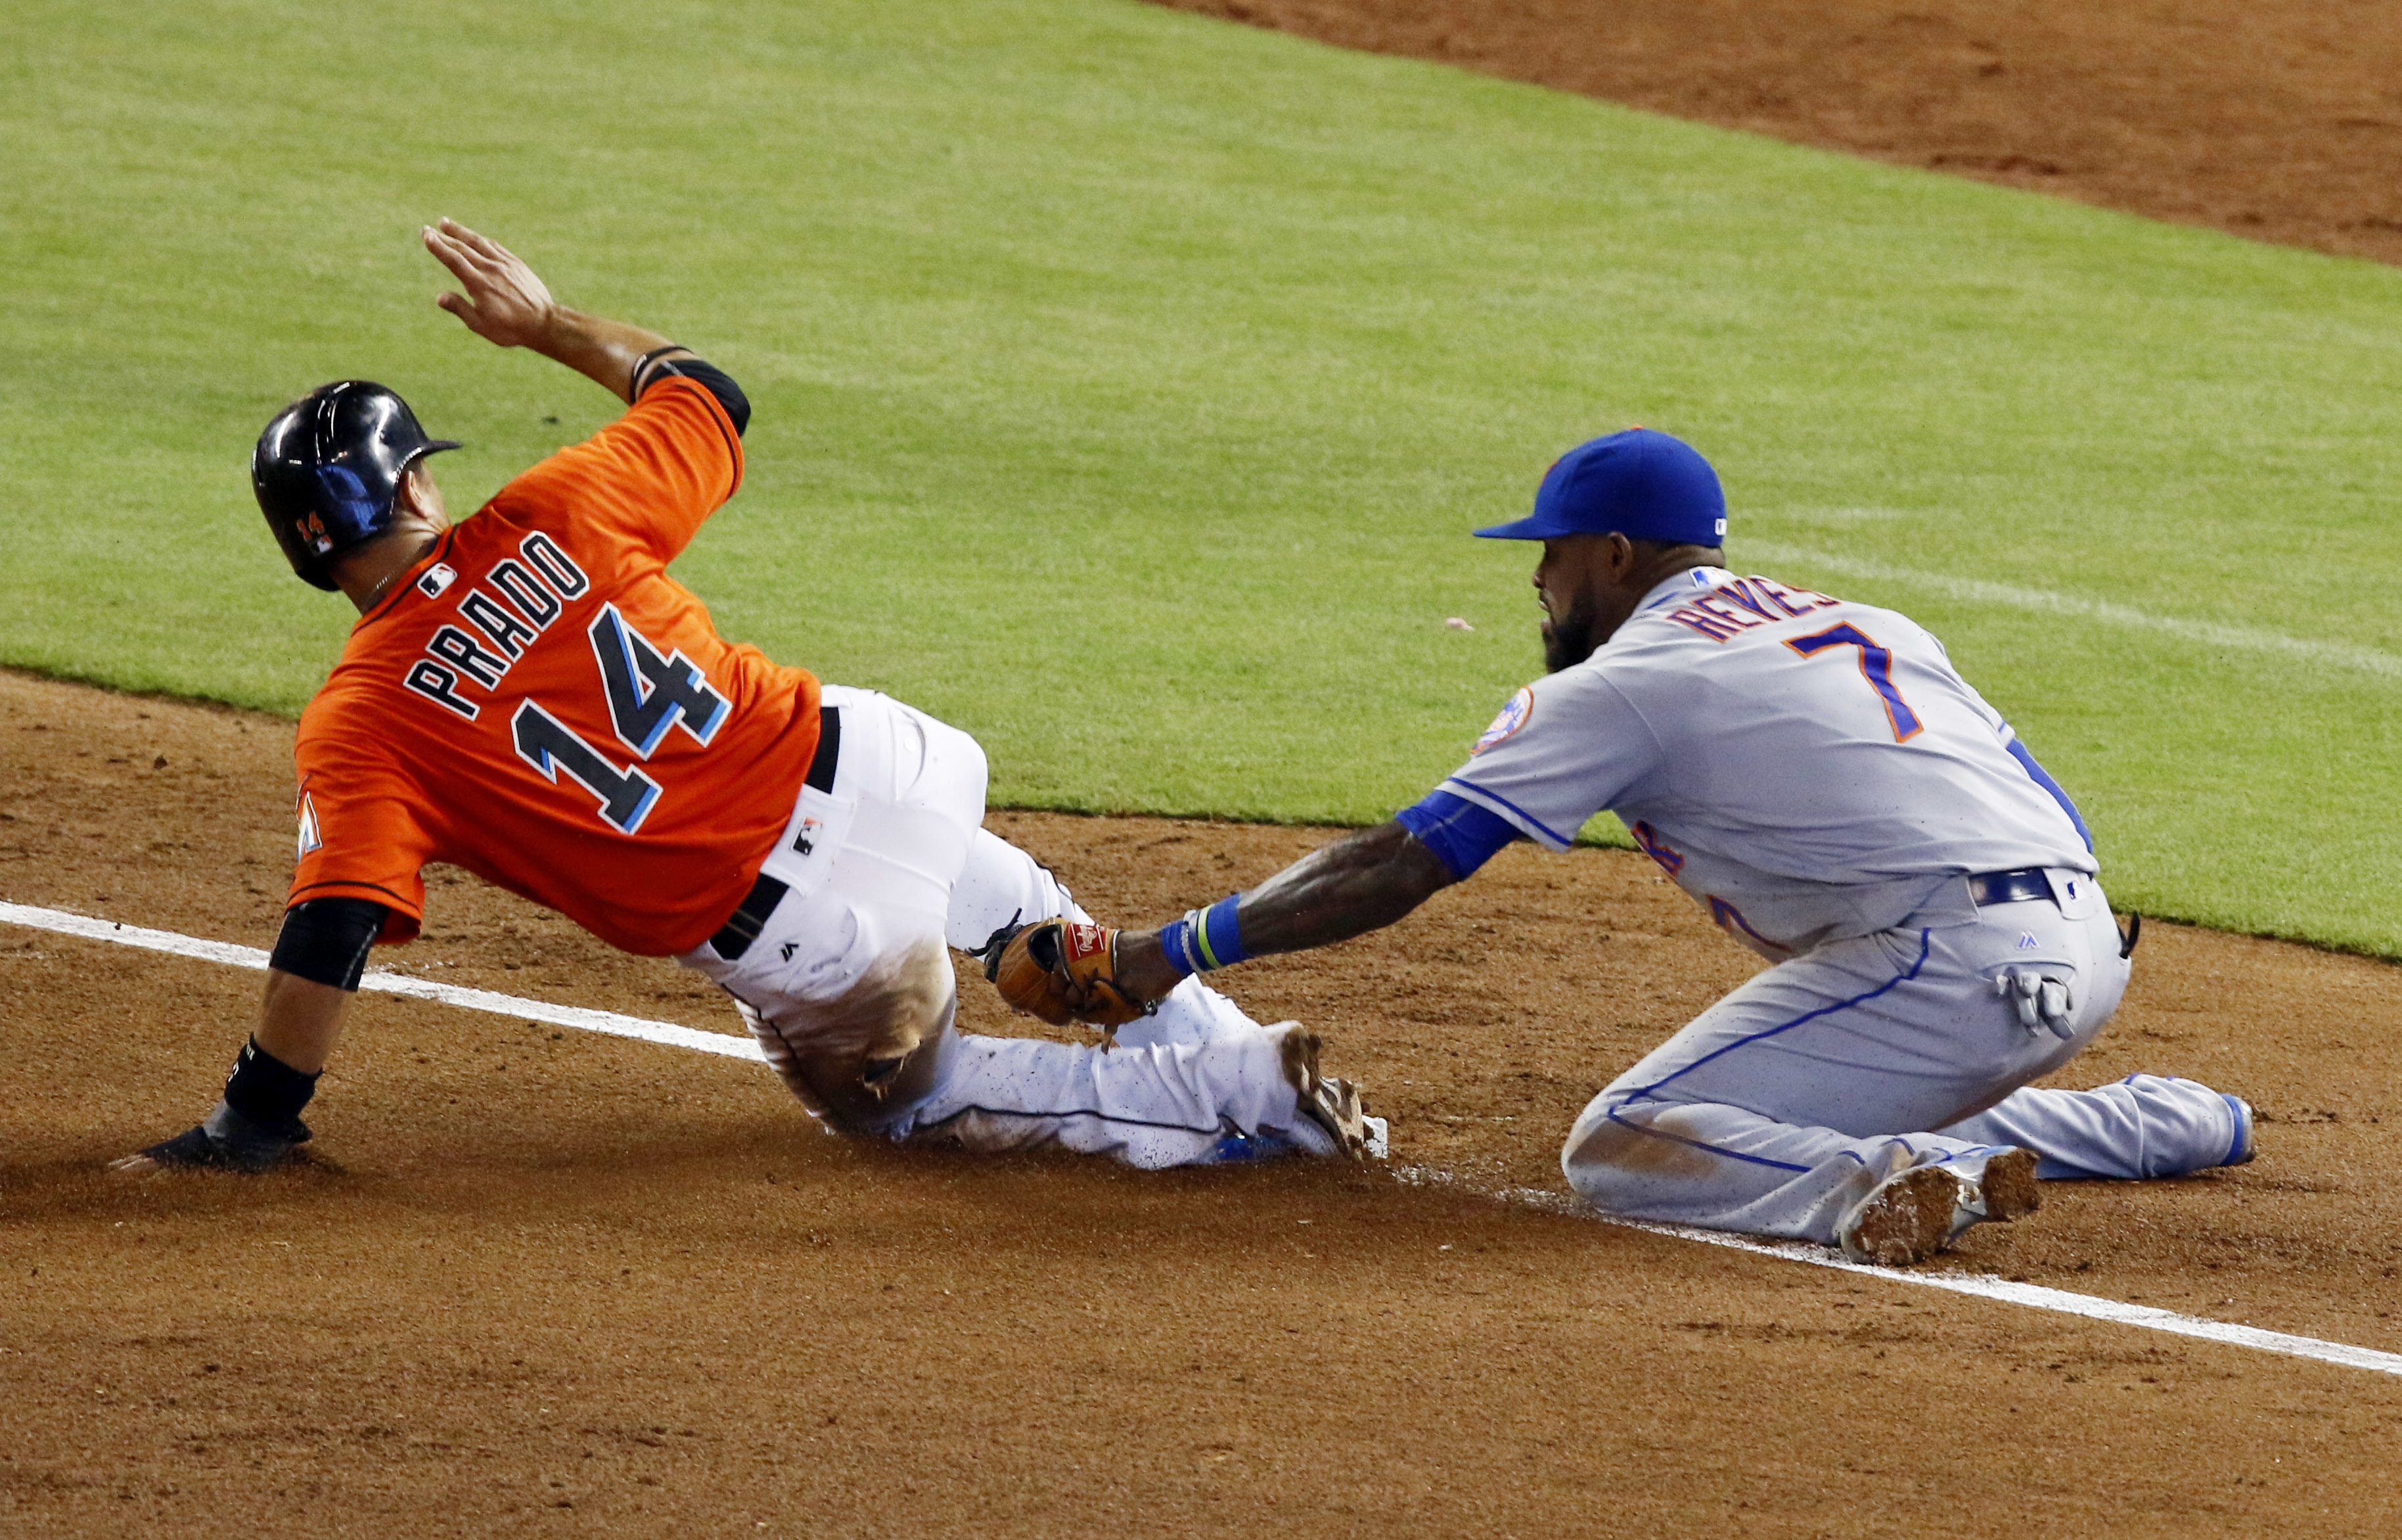 Miami Marlins' Martin Prado, left, slides safely into third base as New York Mets third baseman Jose Reyes (7) applies the late tag in the fifth inning of a baseball game in Miami, Sunday, July 24, 2016. (AP Photo/Joe Skipper)